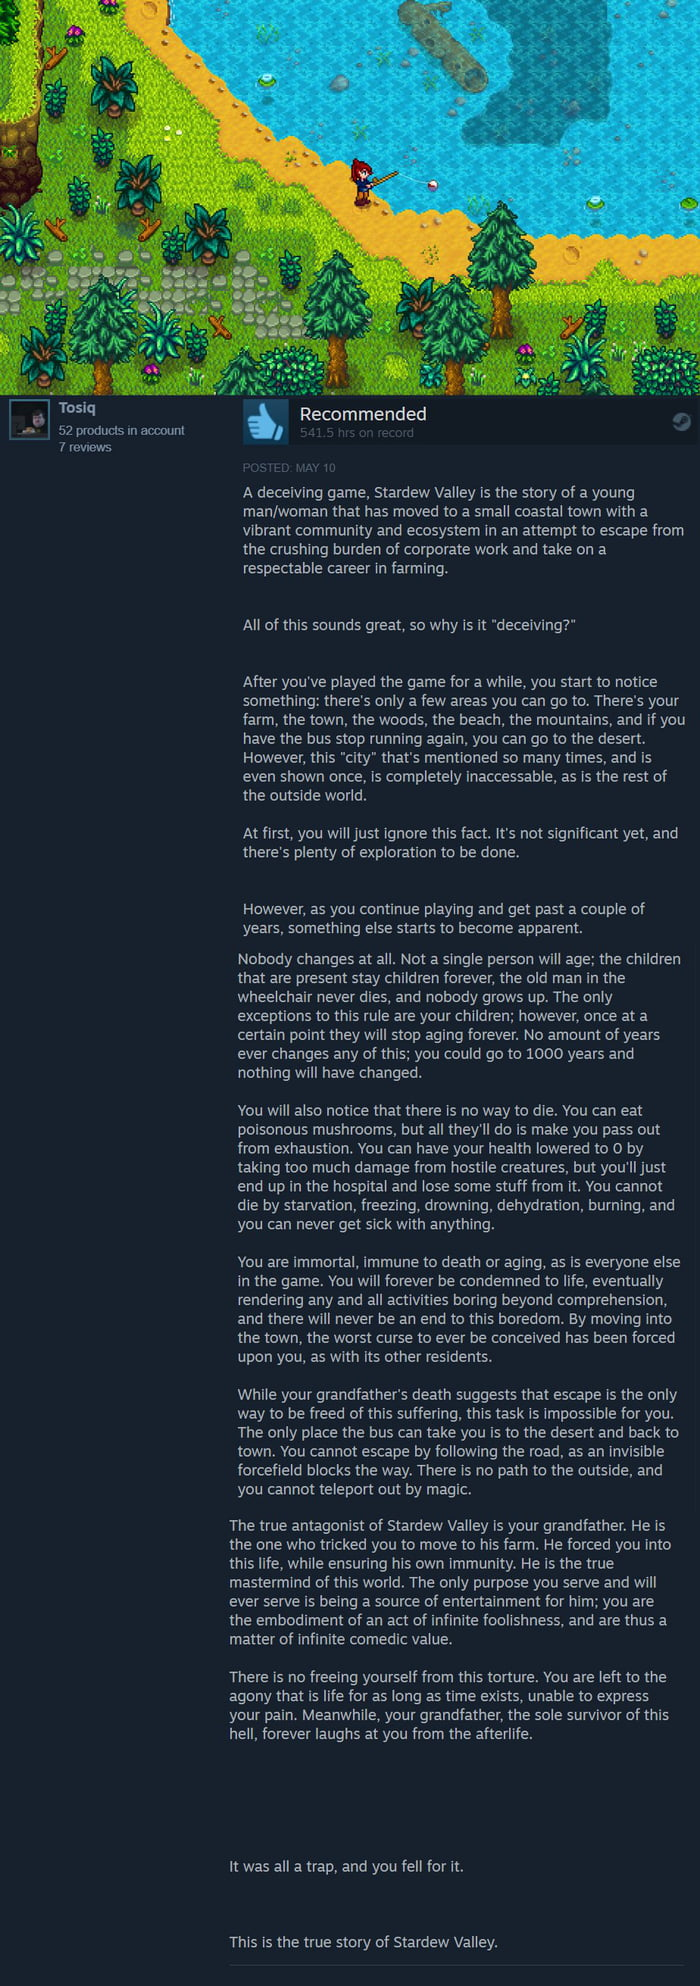 The Funniest Steam Reviews Of Summer 2018 - 9GAG